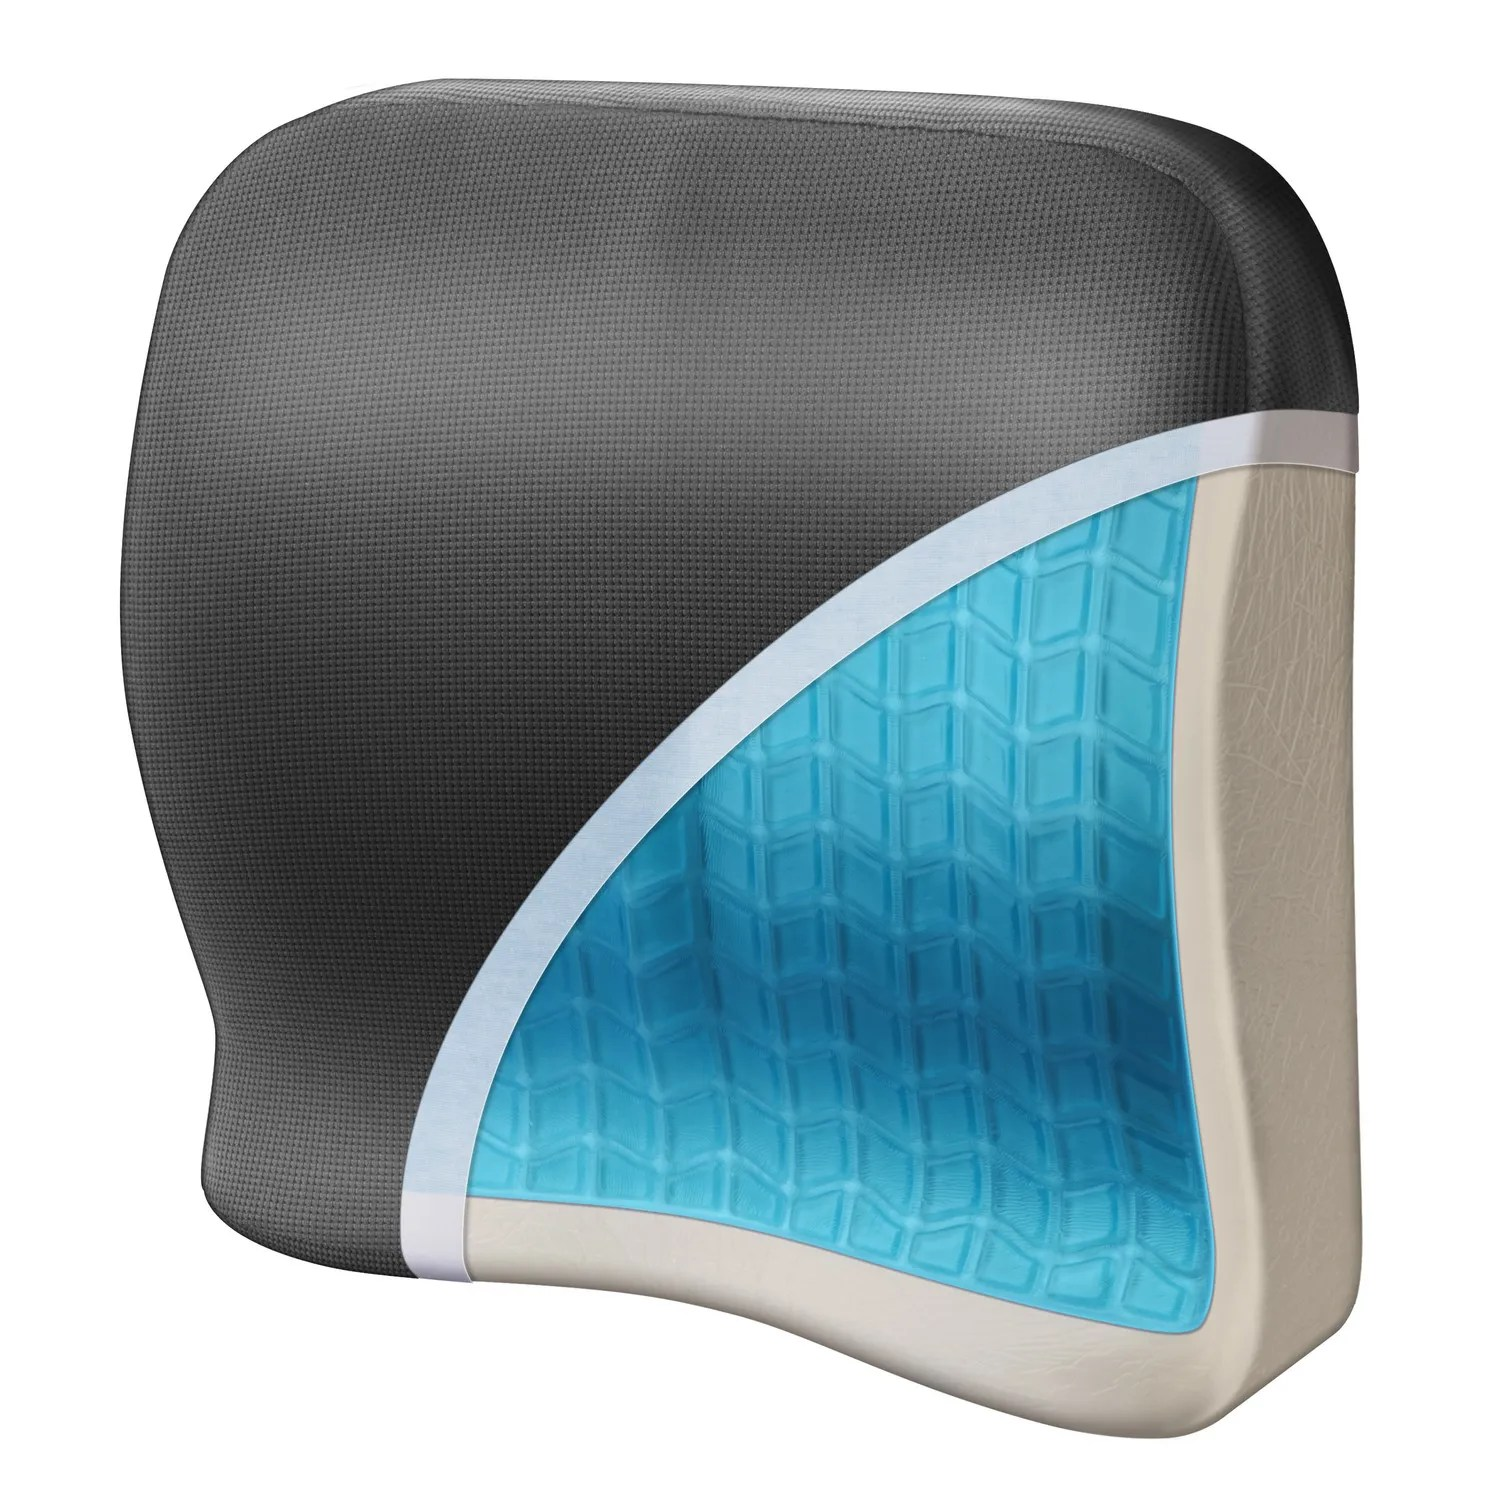 Gel Cushions For Chairs Memory Foam 43 Gel Lumbar Support From Sporty 39s Pilot Shop